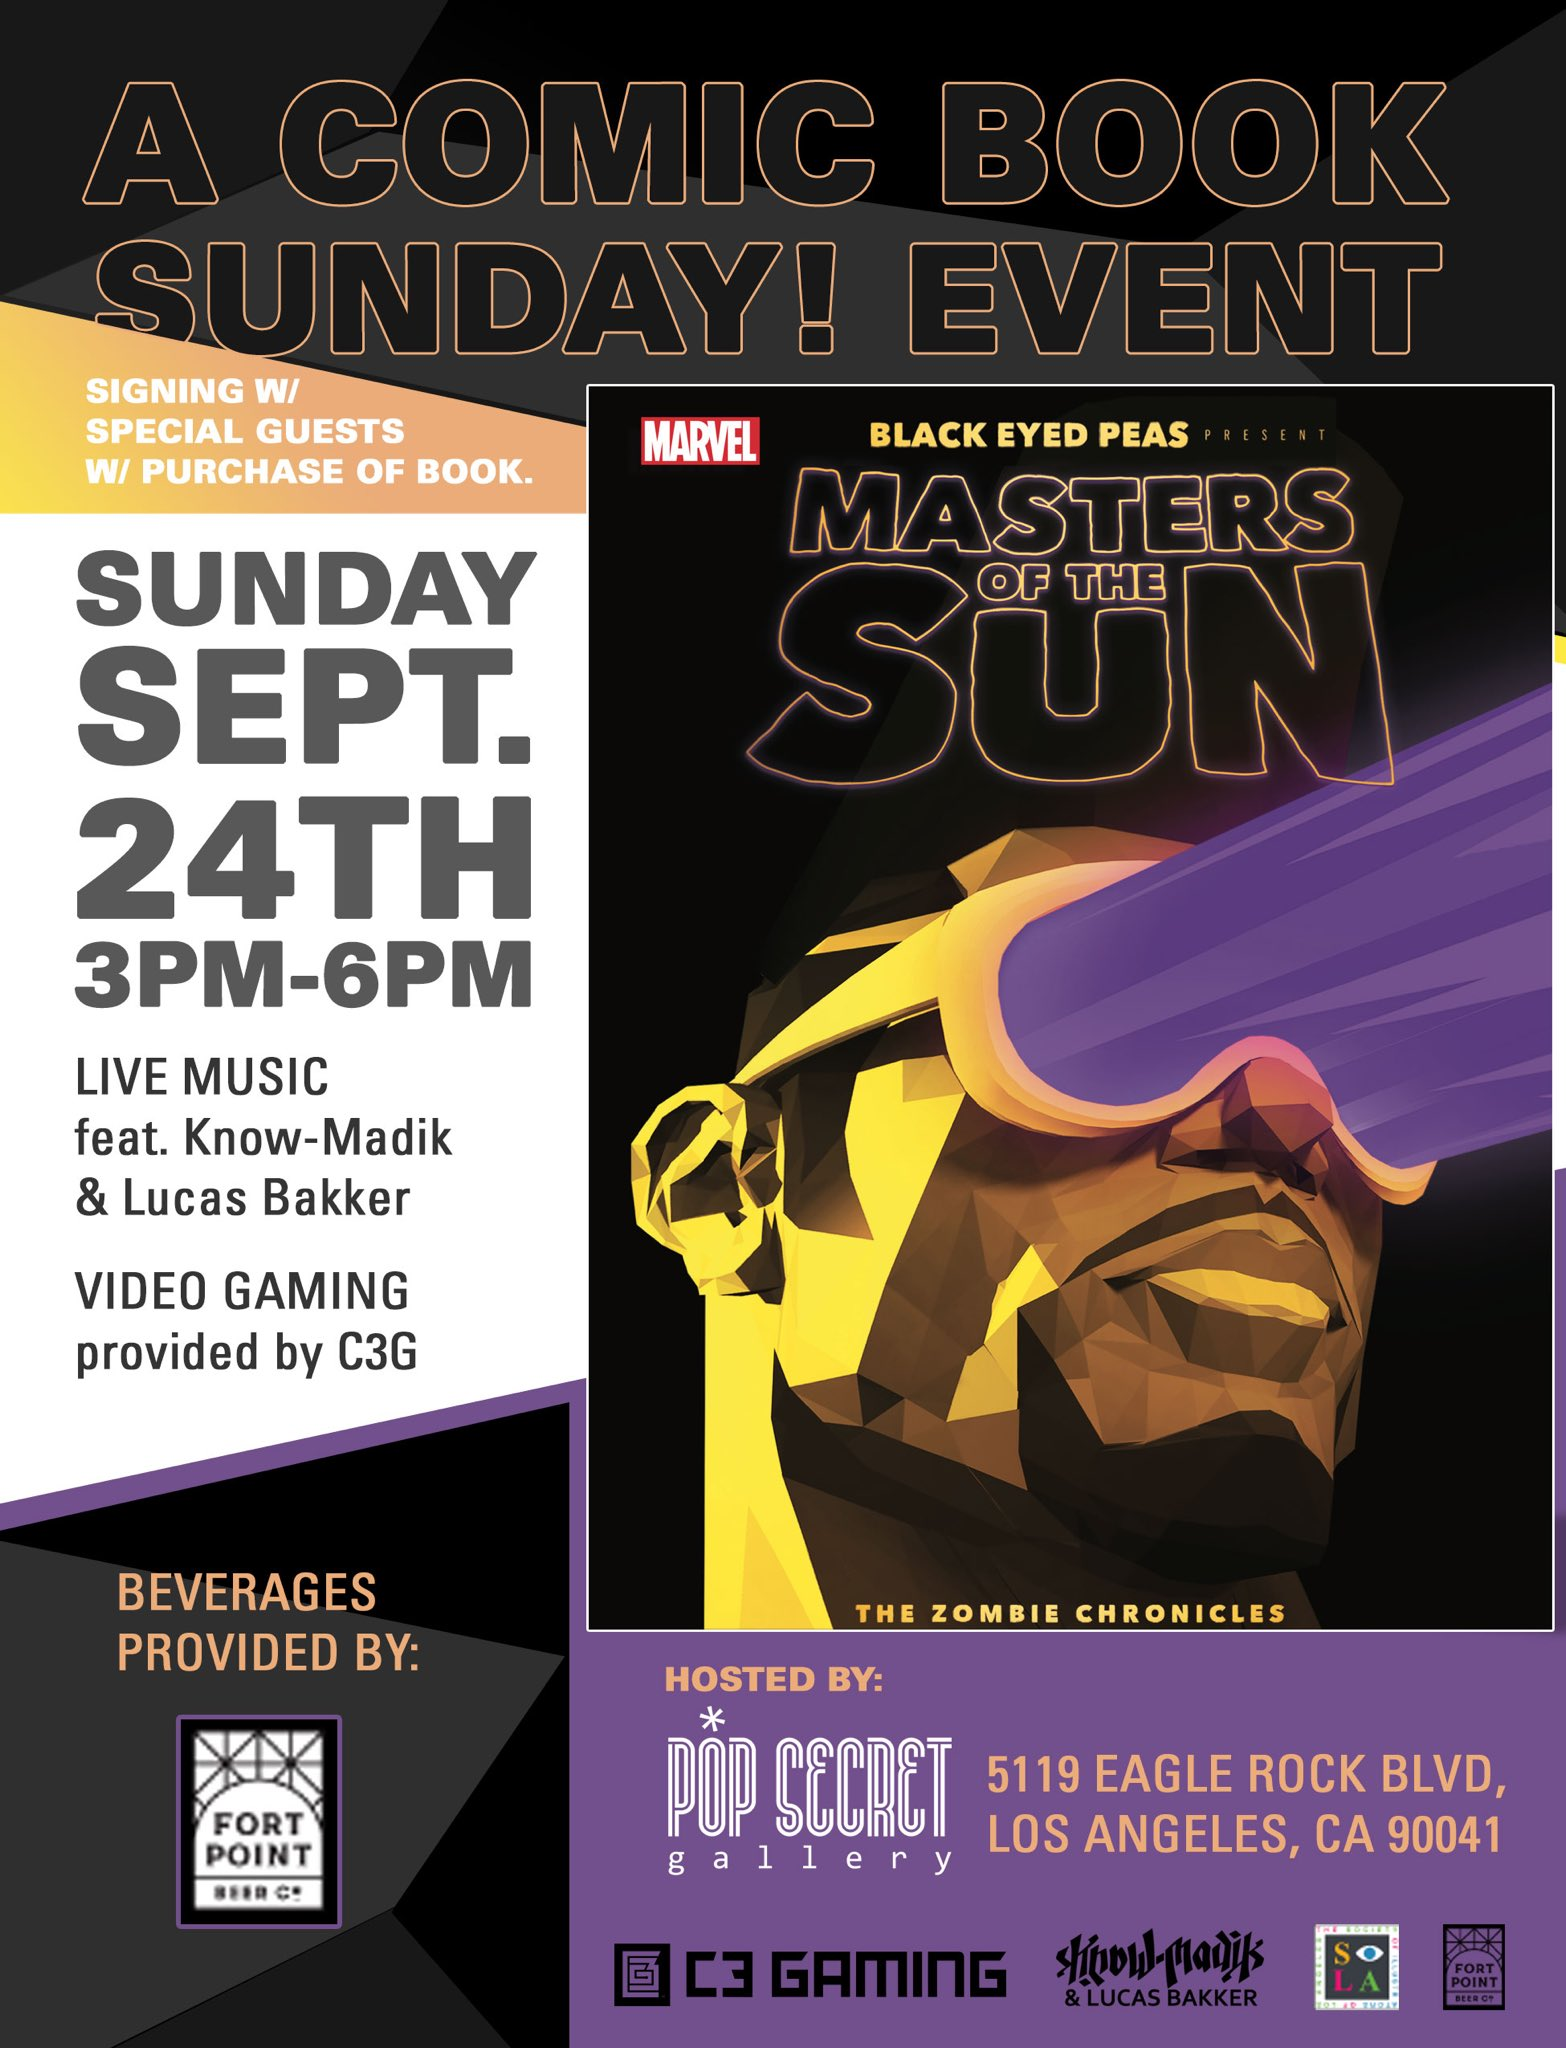 LA -- Pop Secret Gallery this Sunday. Be there to meet co-writer @Sk8Ent_. #MastersOfTheSun https://t.co/31VUtLgDqj